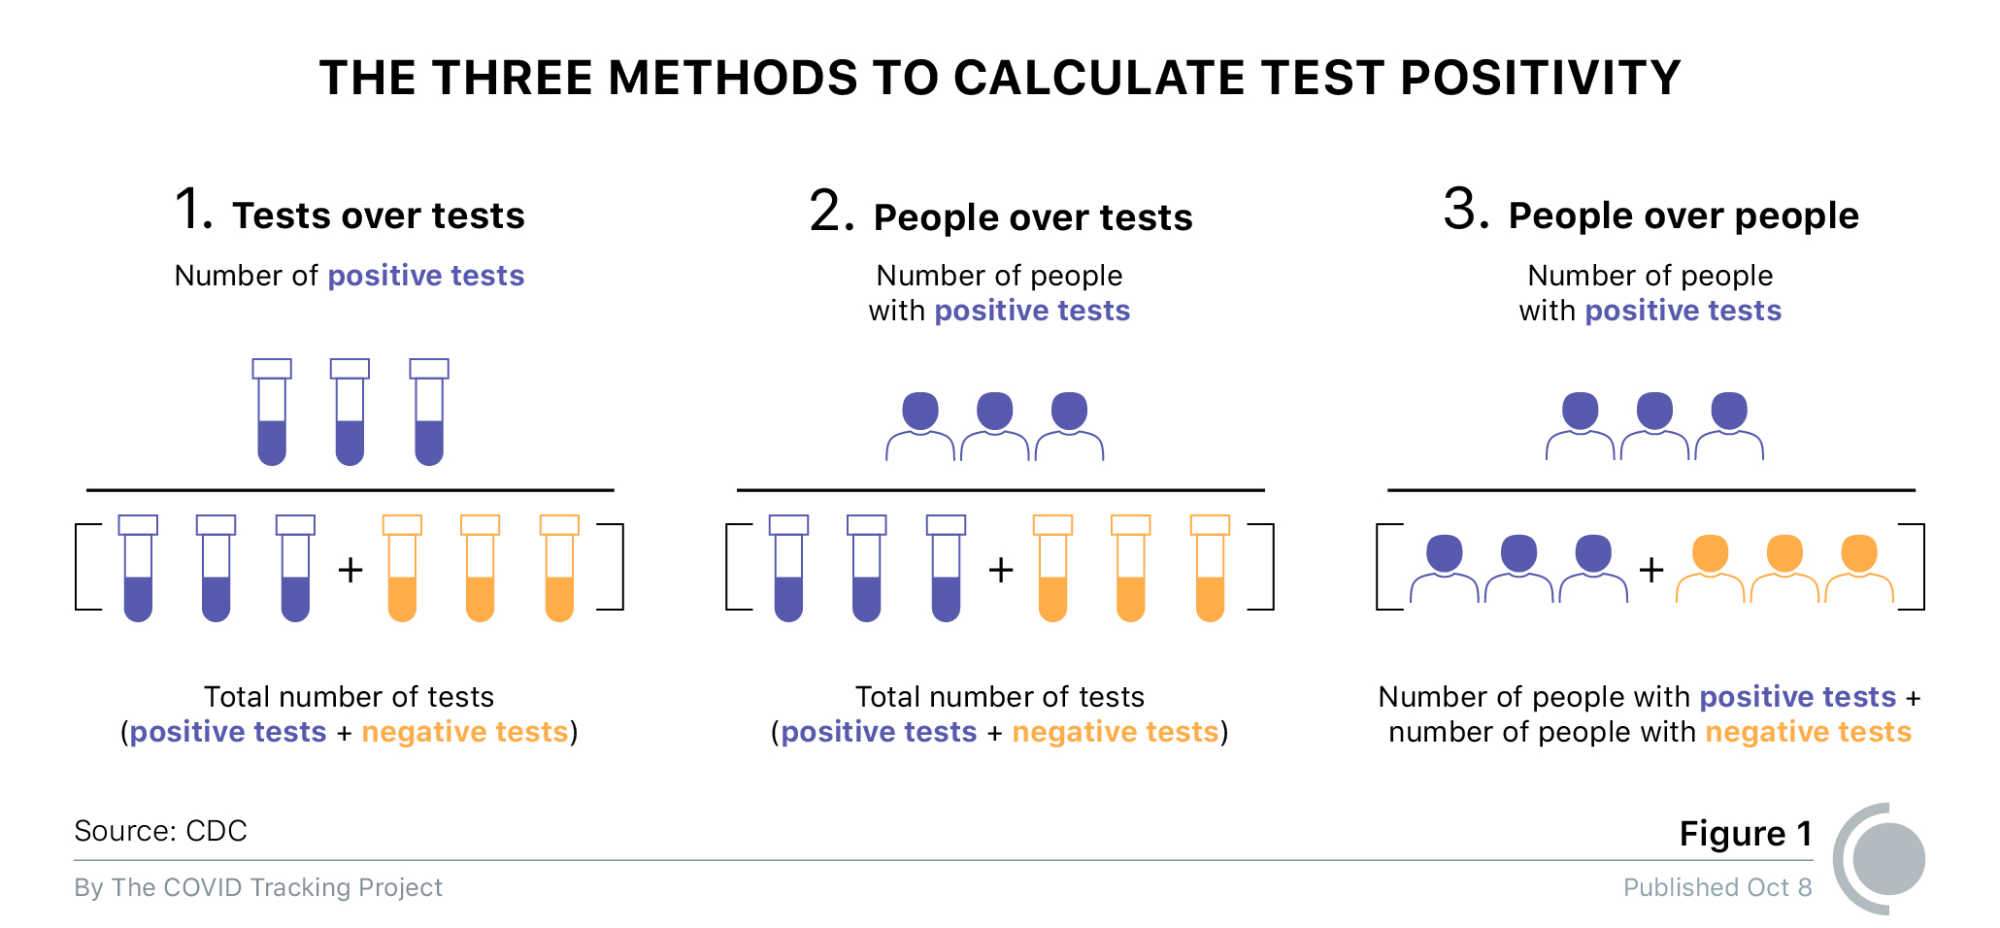 Graphic depicting the three methods for calculating test positivity, as outlined by the US Centers for Disease Control and Prevention. Method 1 is